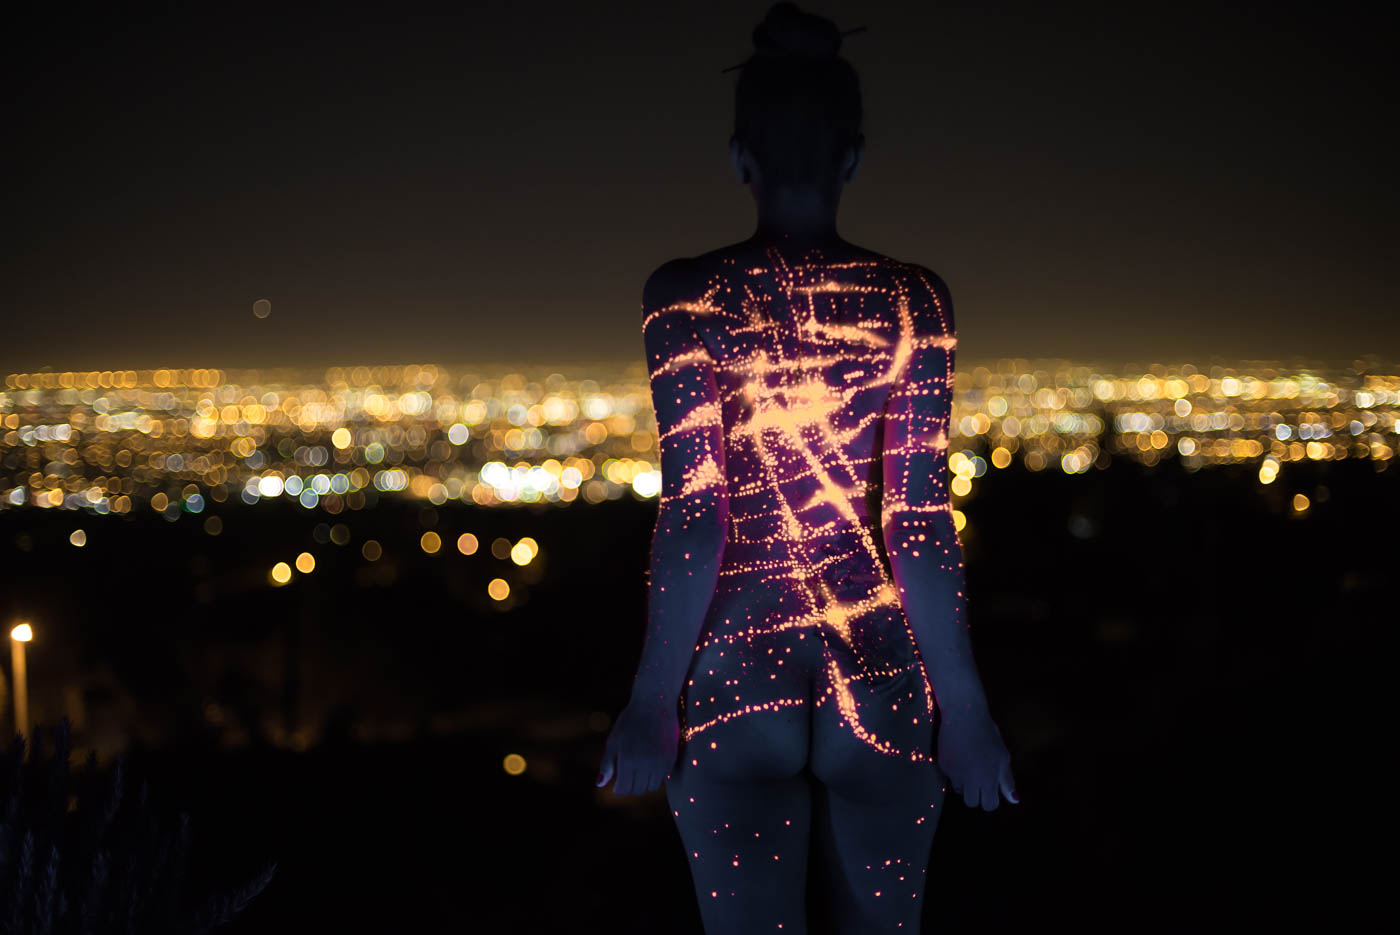 City Lights body painting by body paint artist Paul Roustan